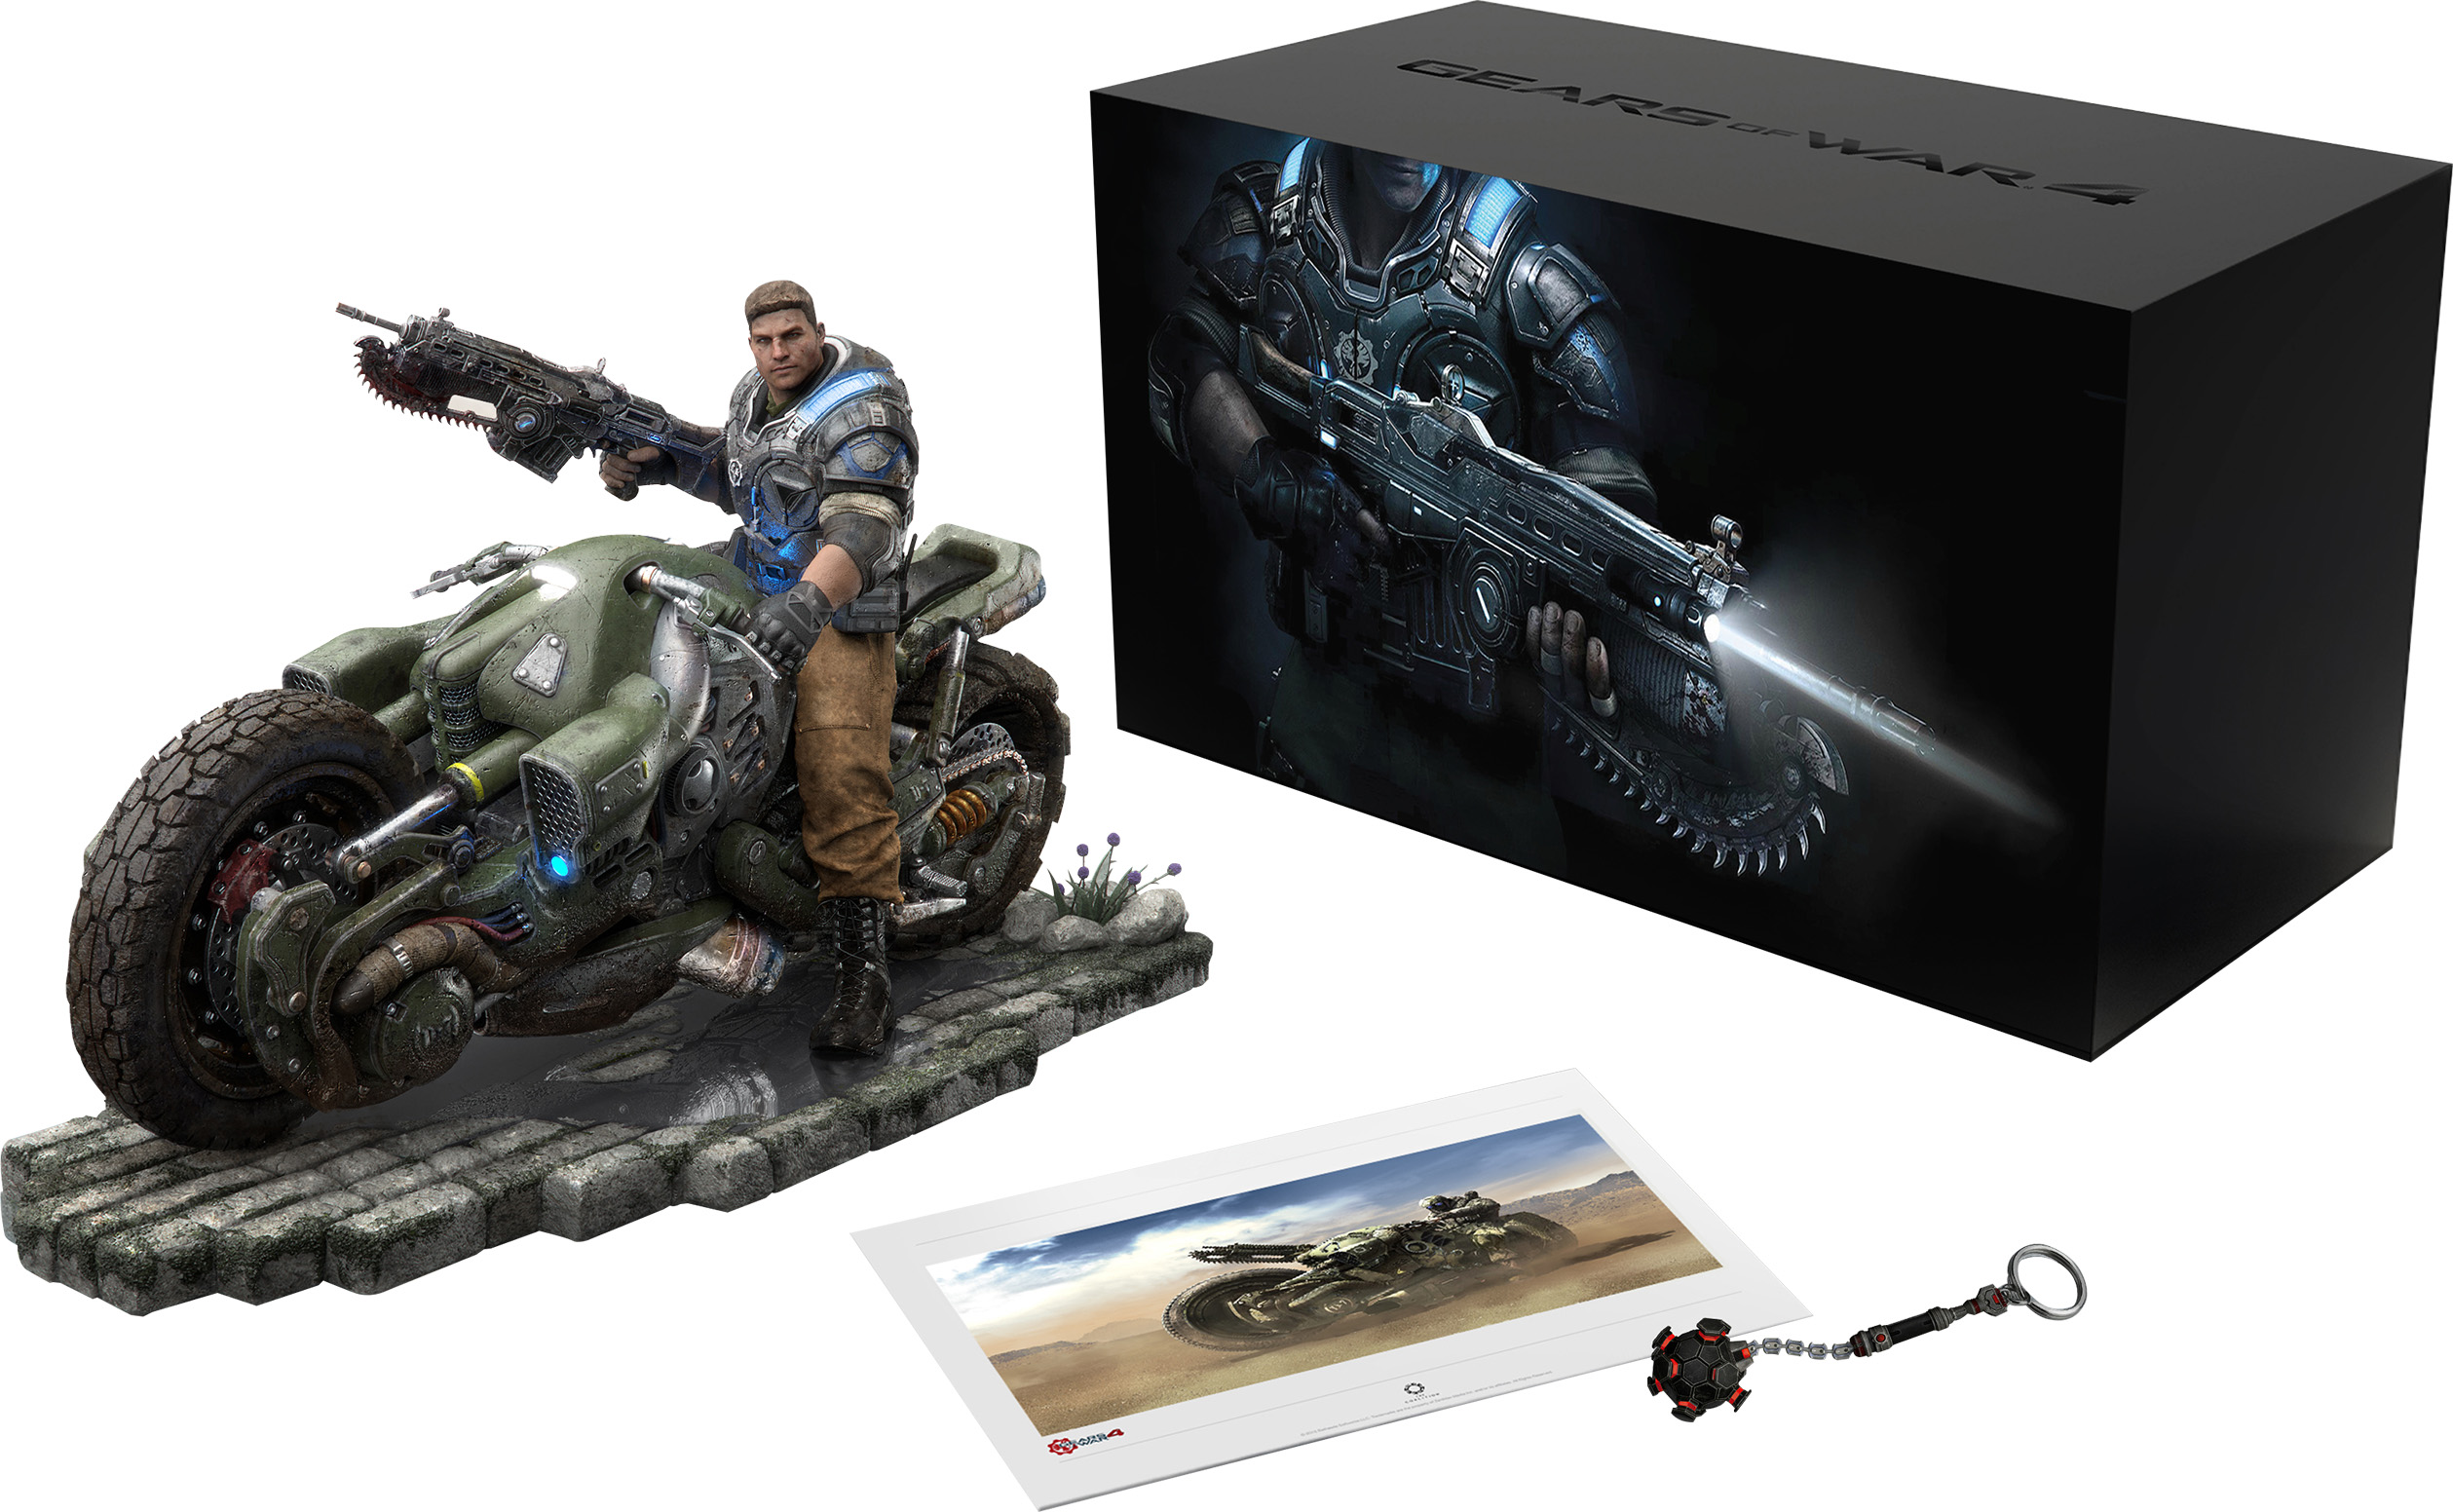 Gears of War 4: Collector's Edition for Xbox One